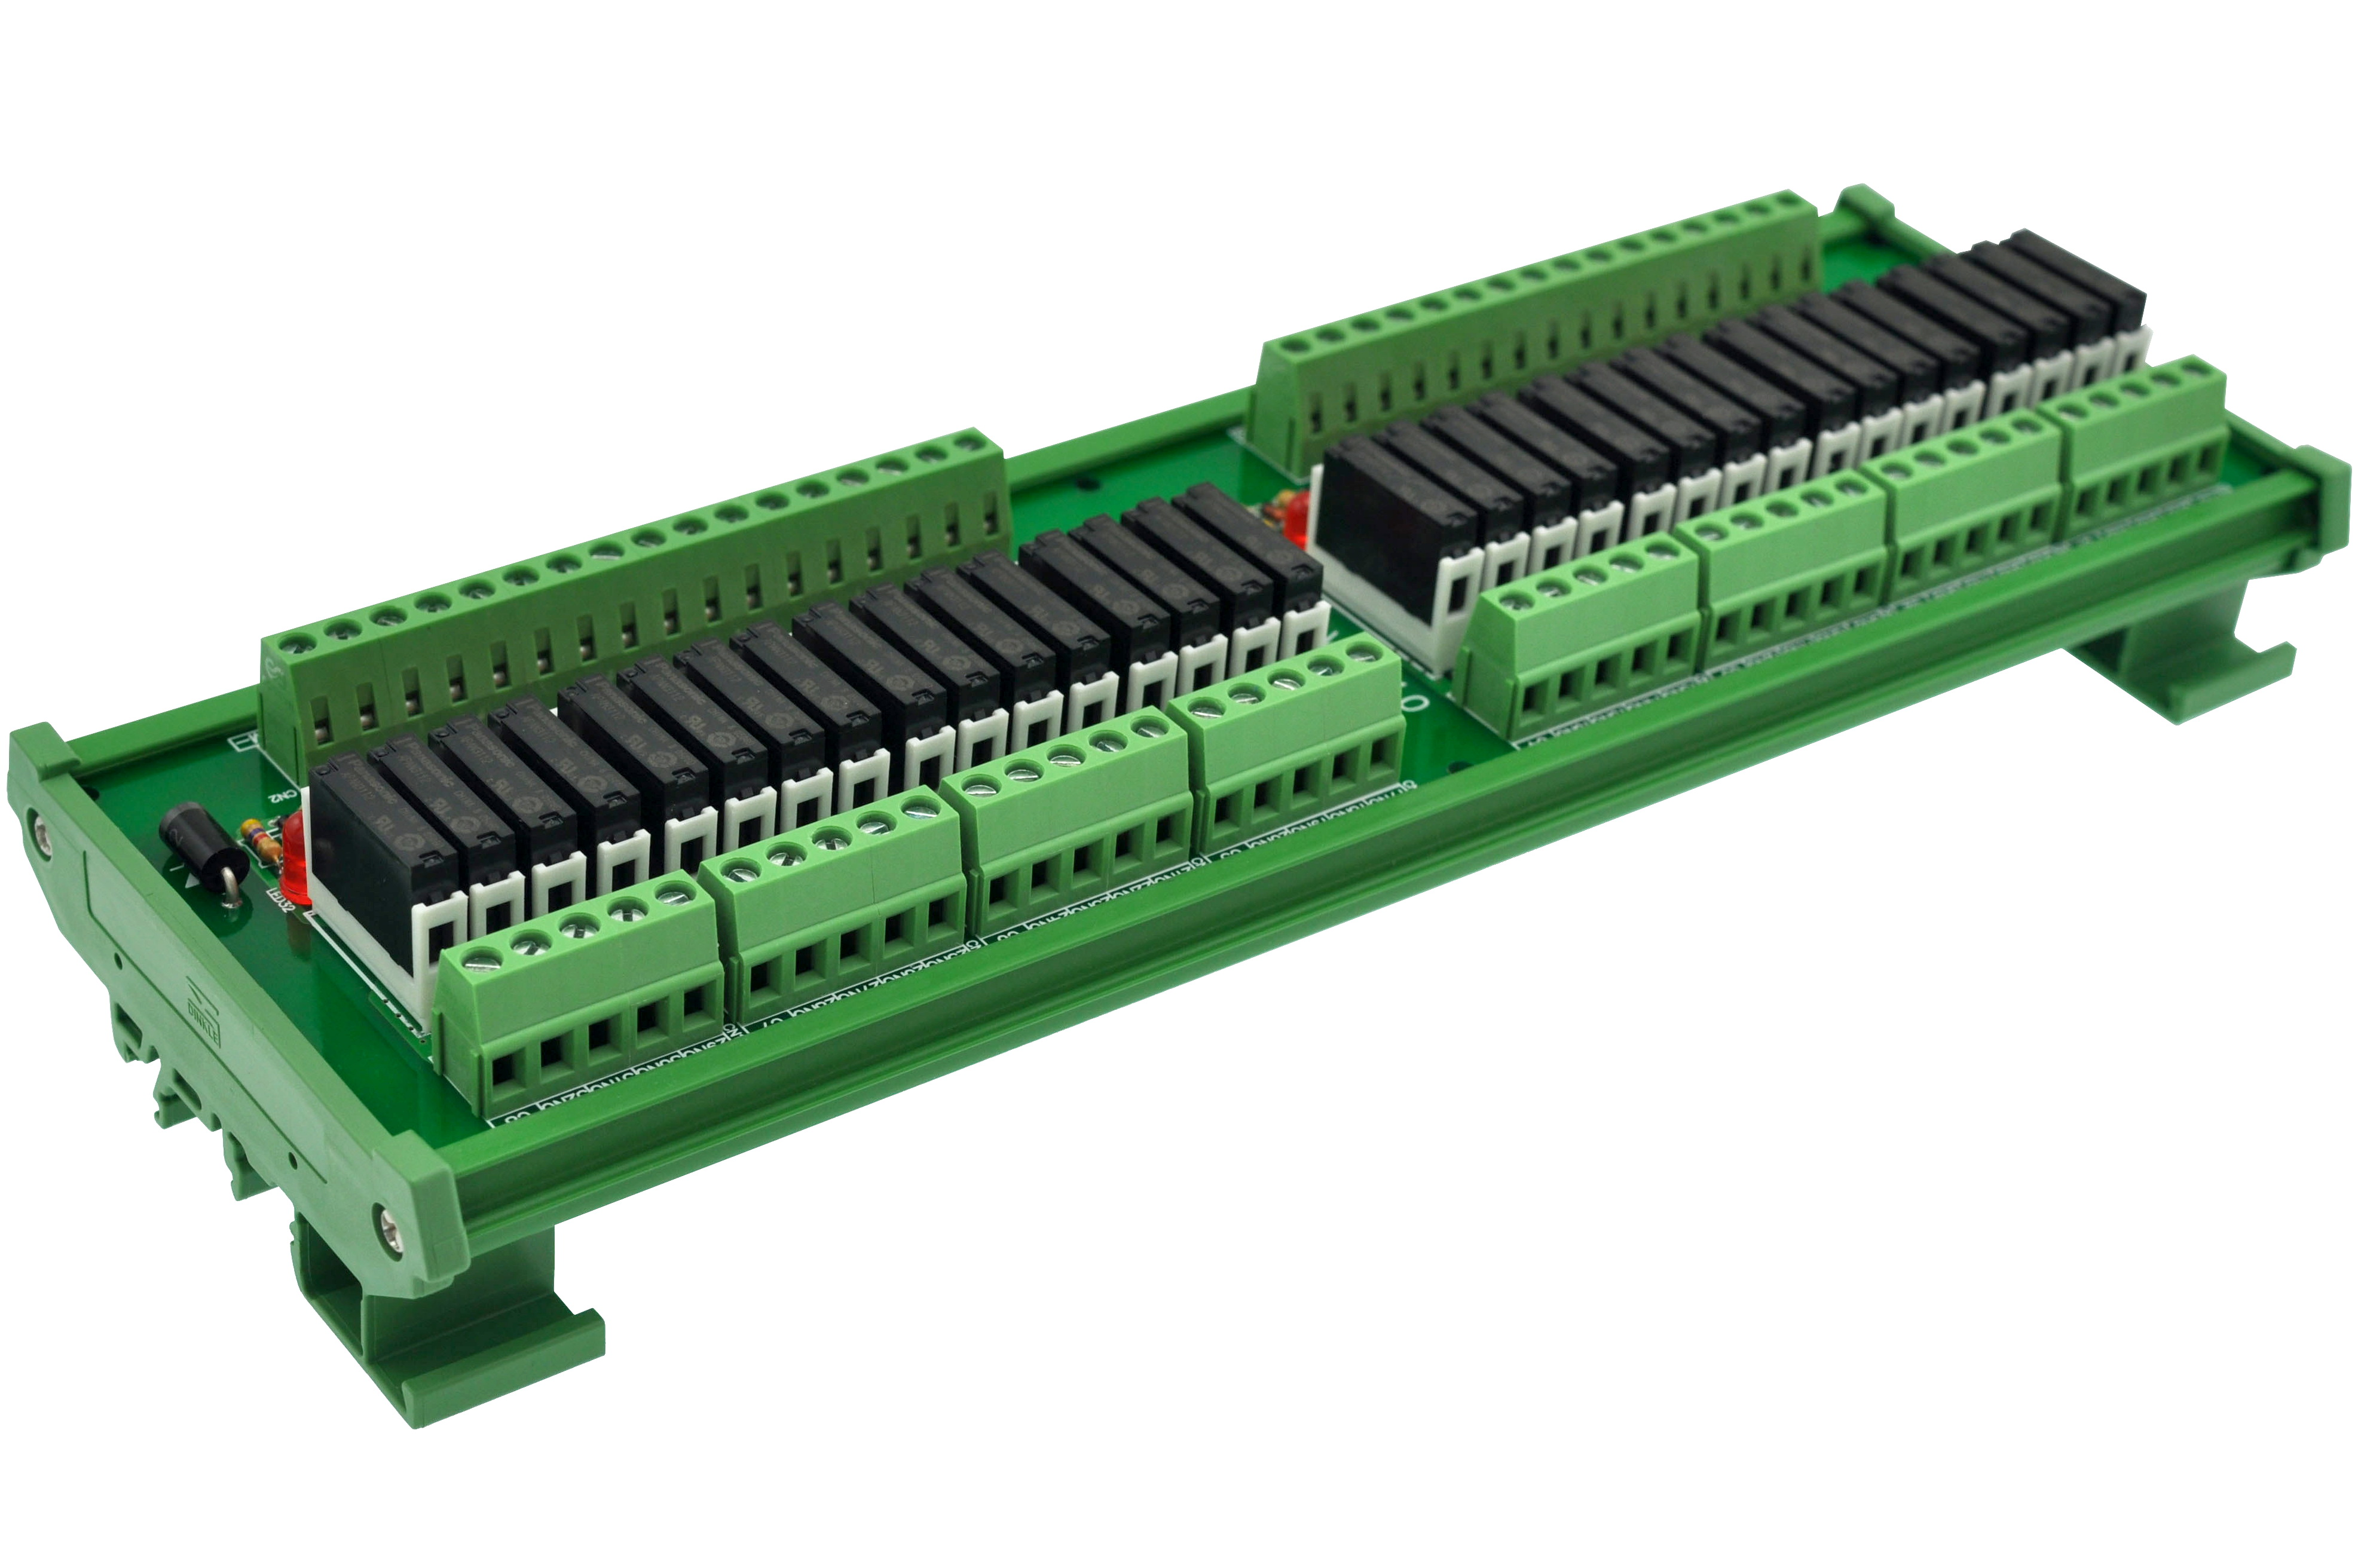 Slim DIN Rail Mount DC12V Source/PNP 32 SPST-NO 5A Power Relay Module, APAN3112